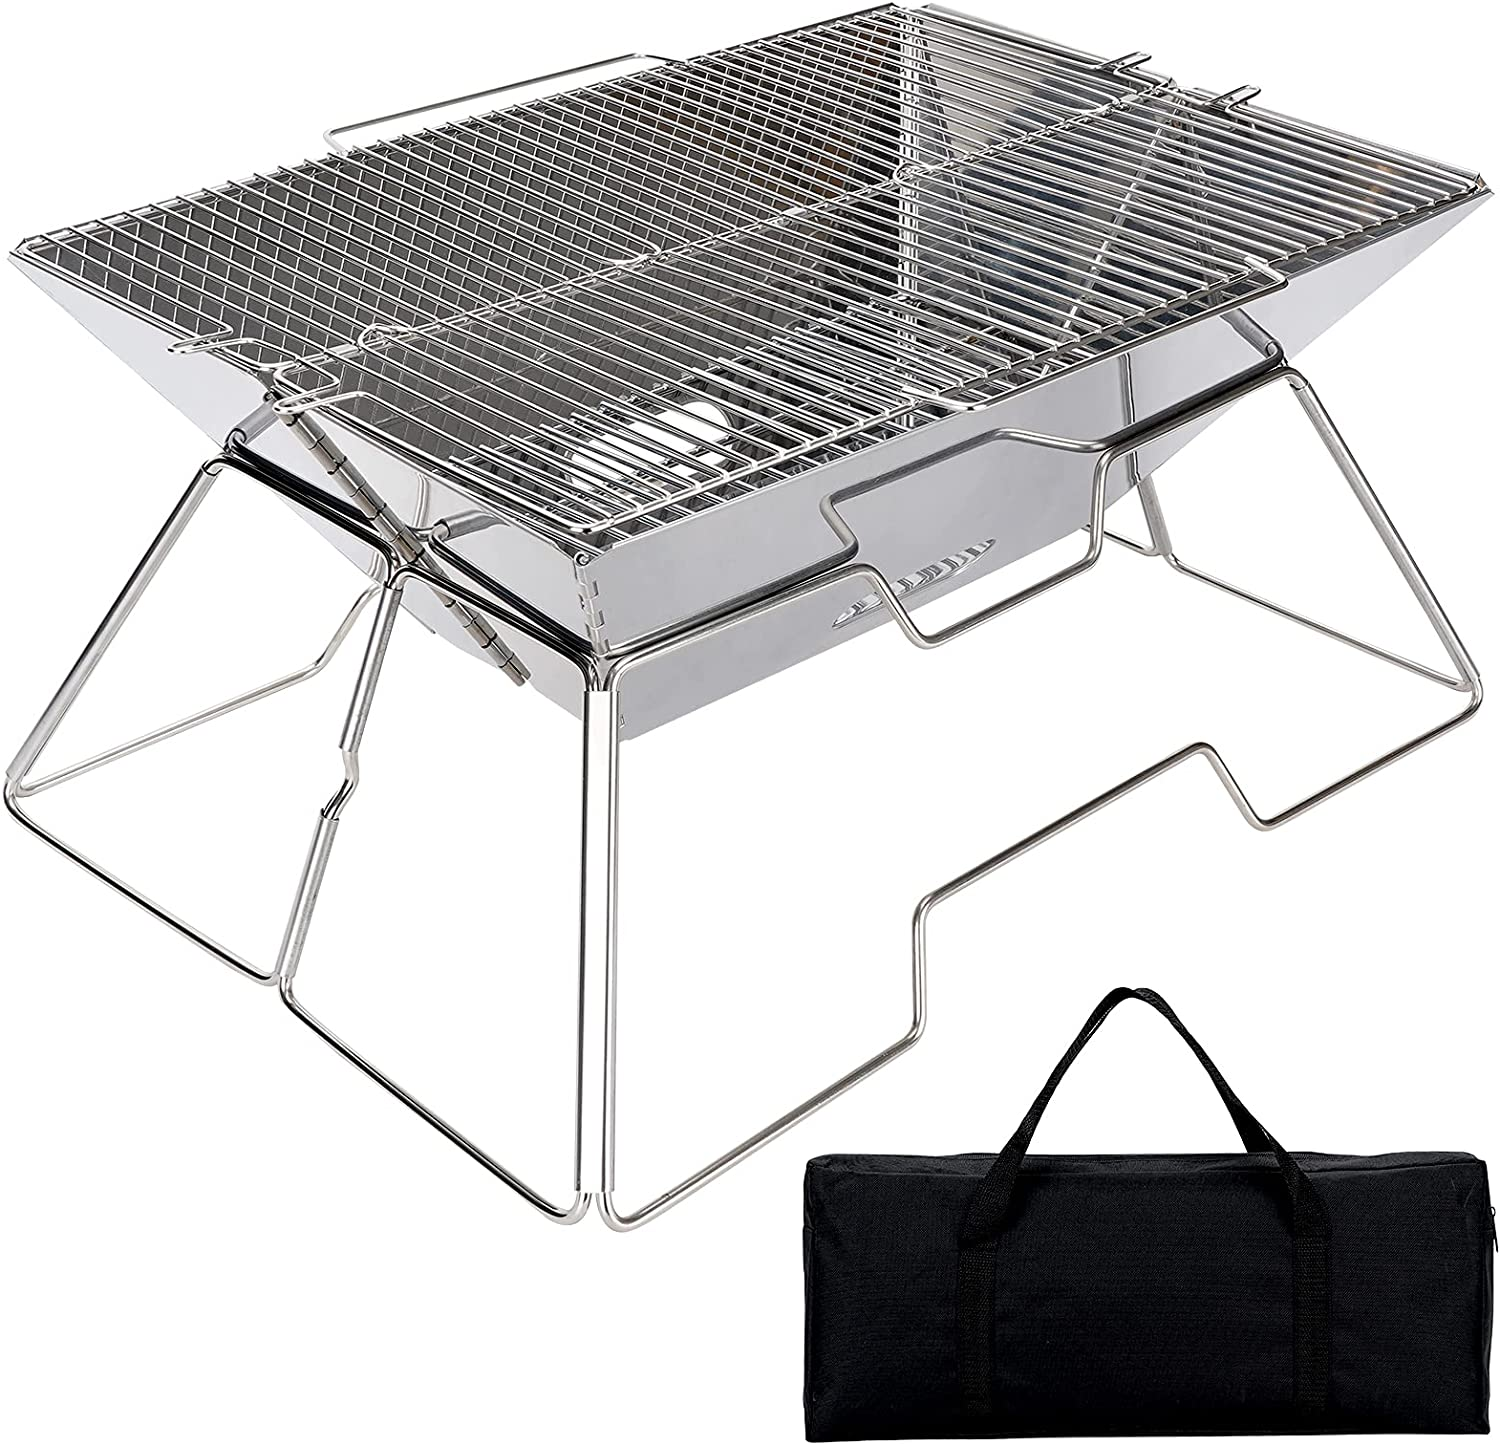 Folding Campfire Grill Camping Fire Wood Bur Stove Excellent Outdoor Direct stock discount Pit